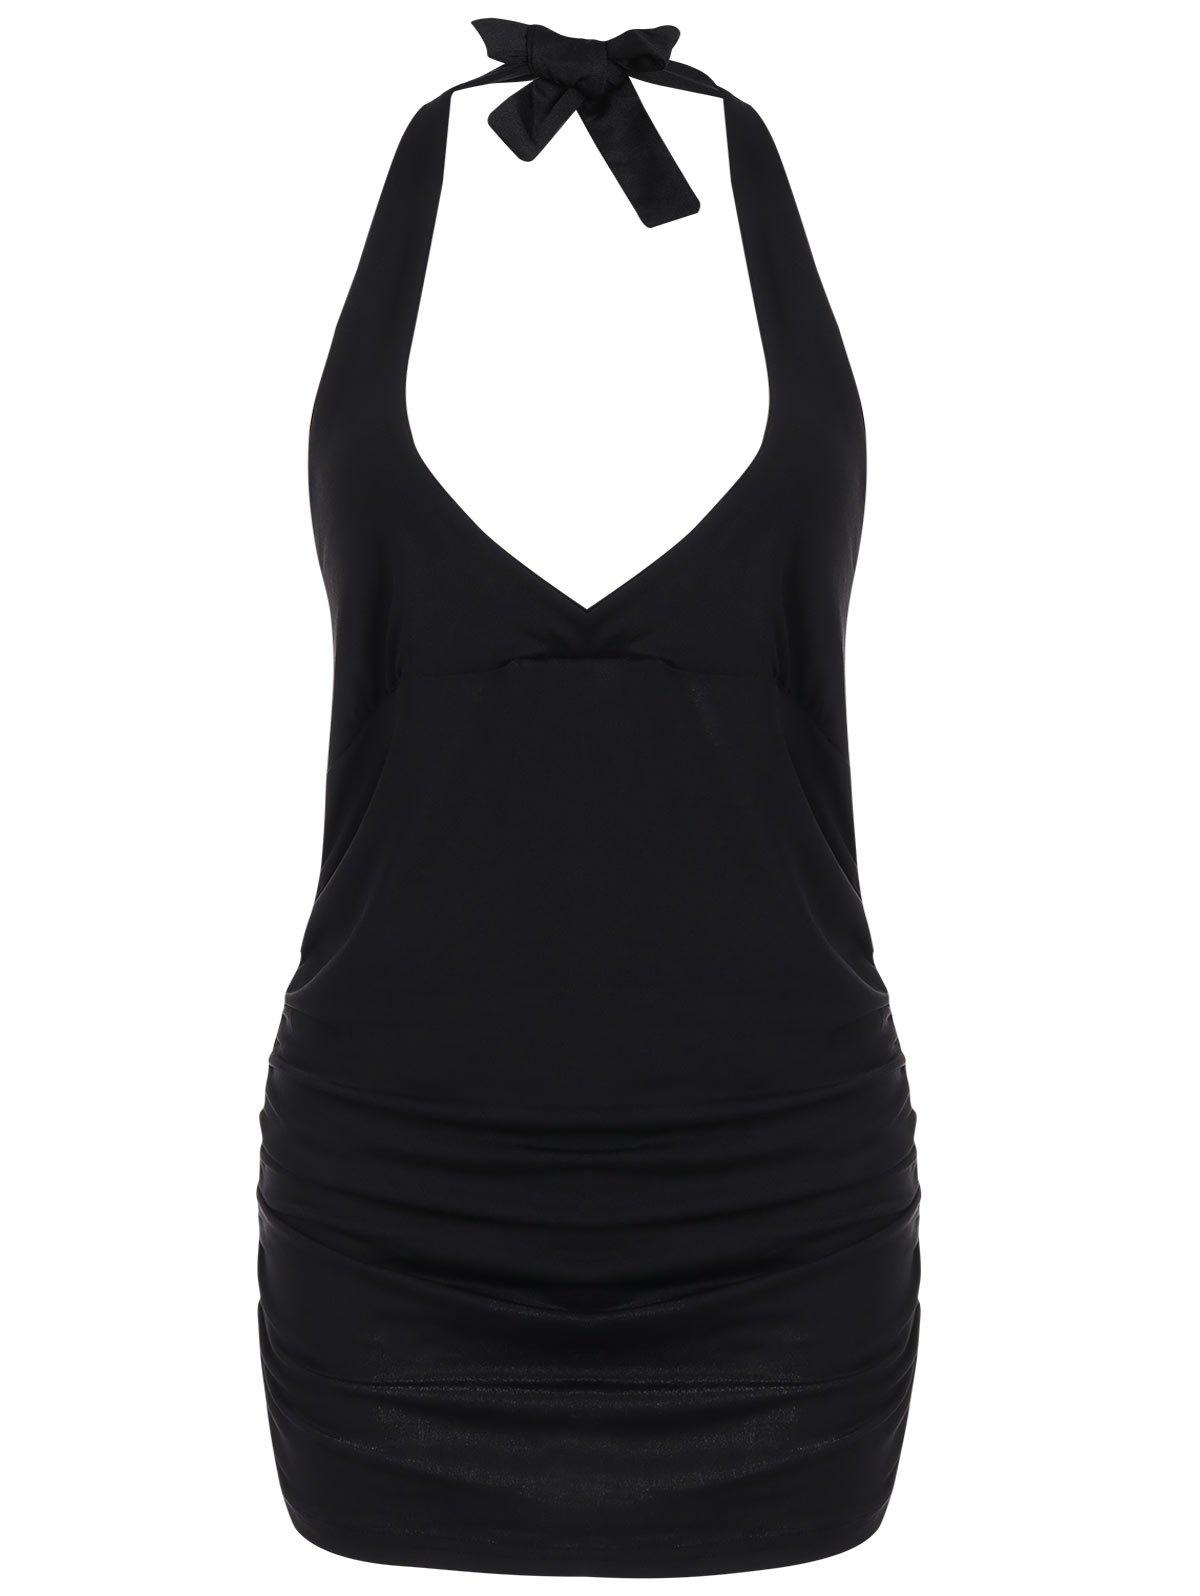 Halter Low Cut Backless Camisole - BLACK XL